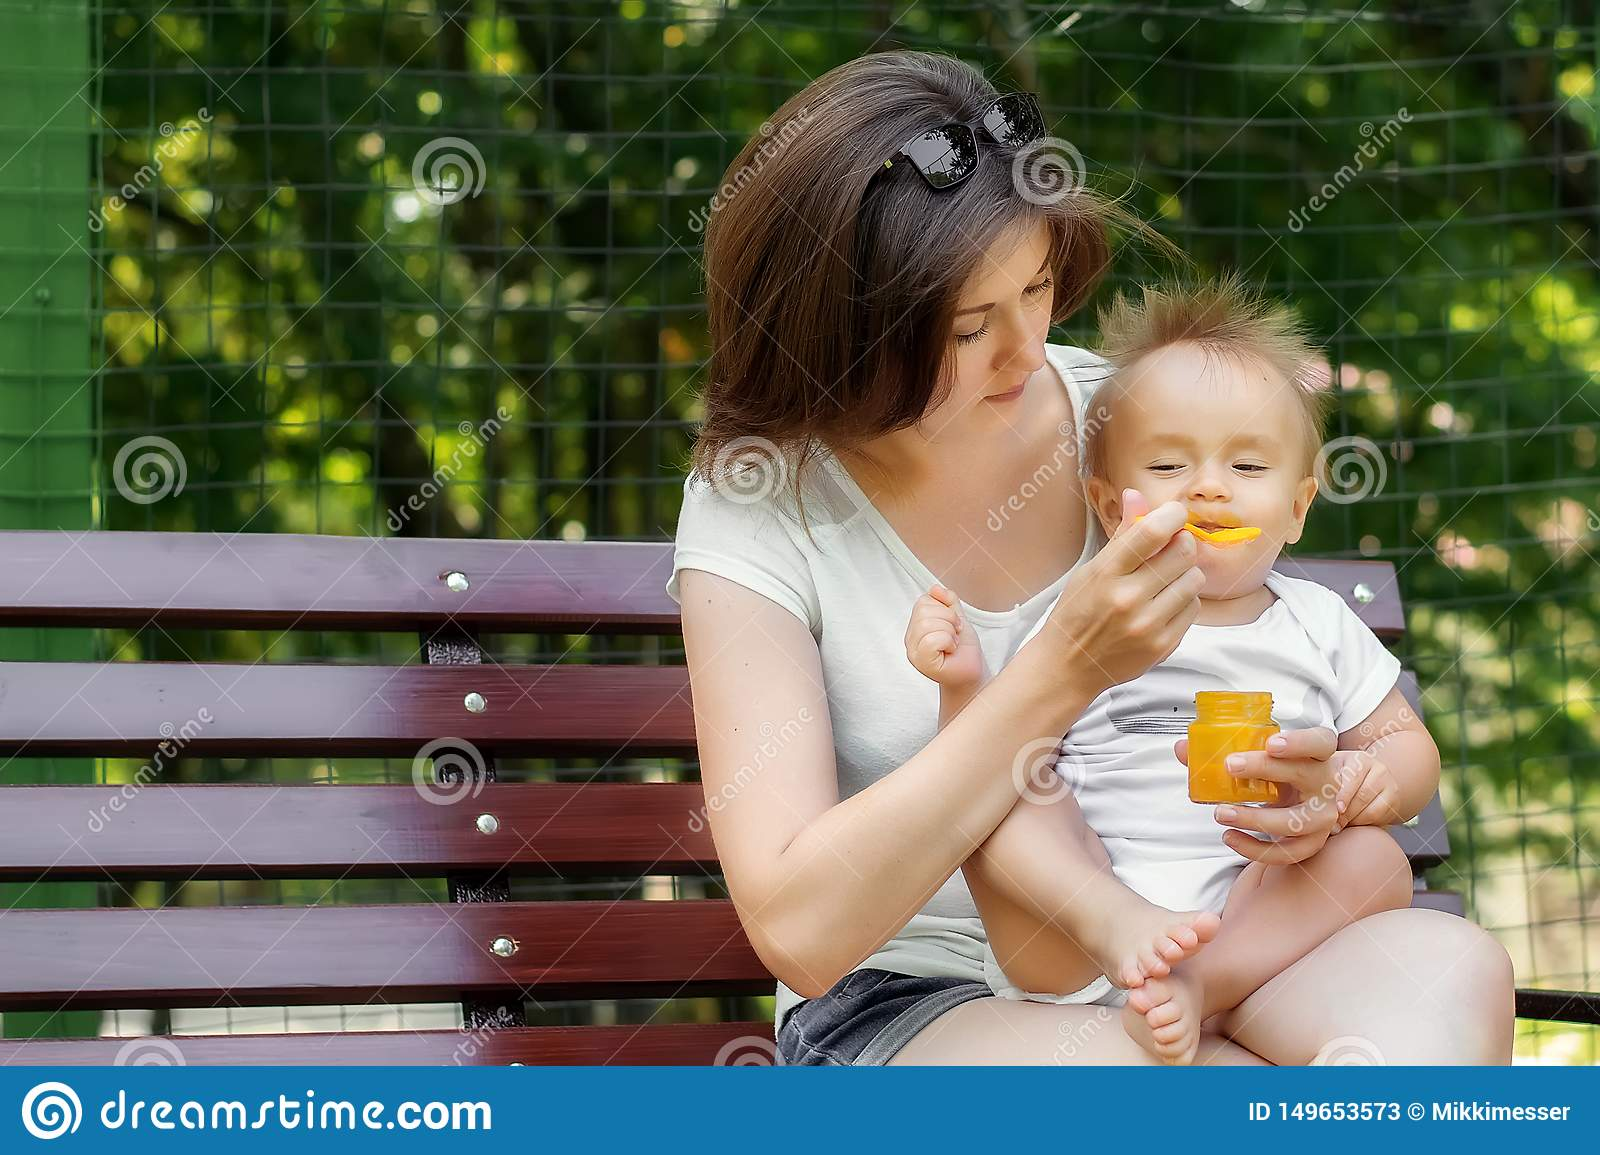 Improvised picnic with a baby: mother gives complementary feeding pumpkin puree to her hungry infant child sitting on bench